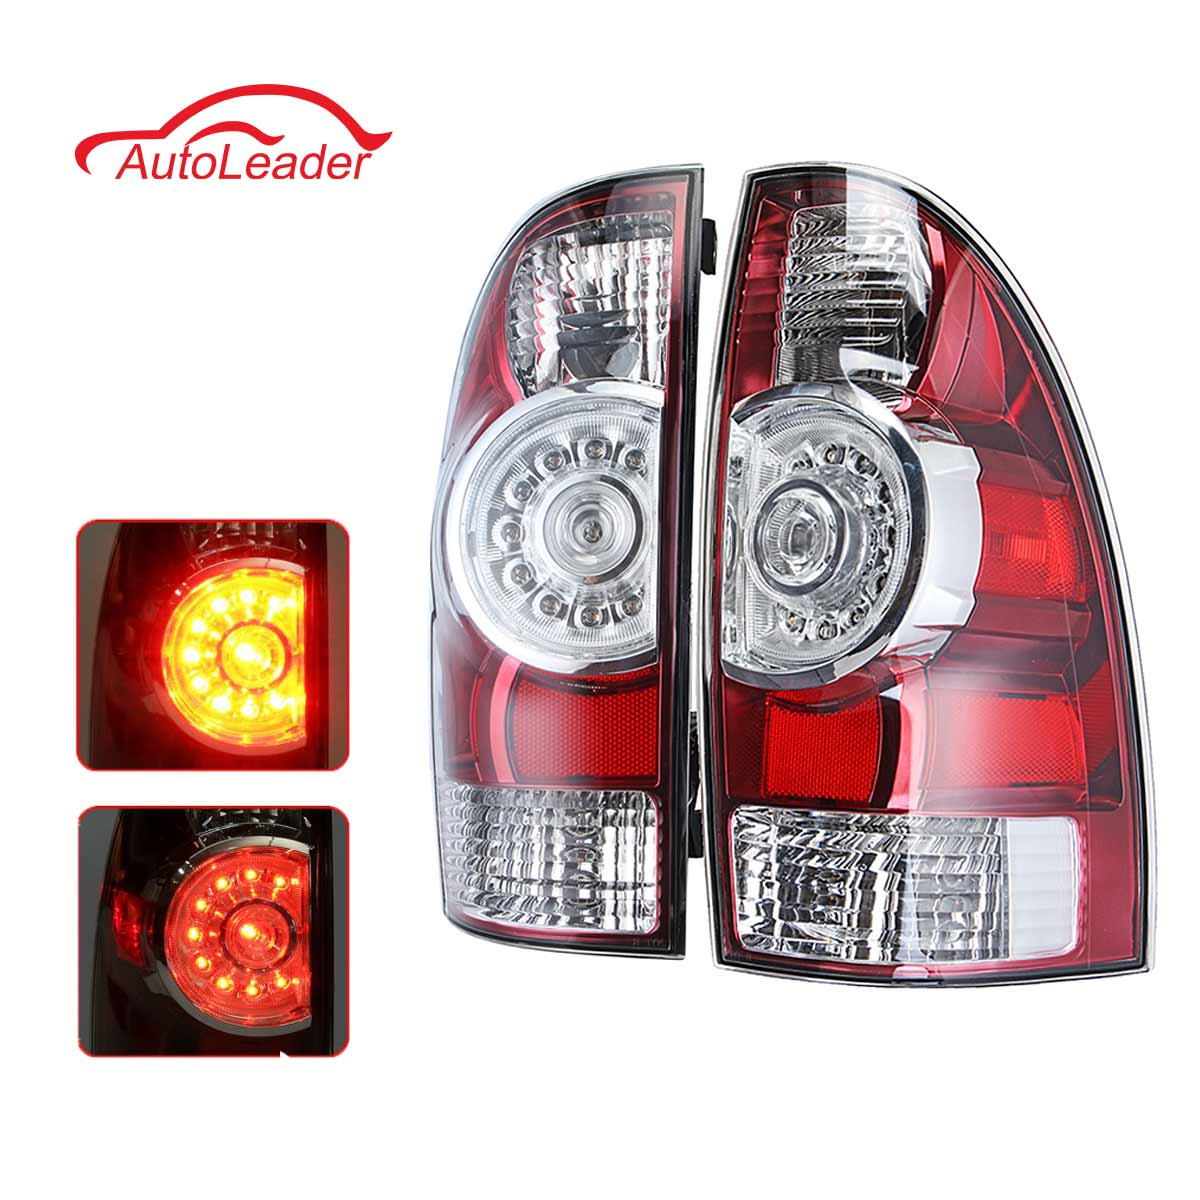 Car Rear LED Tail Light Brake Lamp Left/ Right For Toyota Tacoma Pickup 2005 2006 2007 2008 2009 2010-2015 8156004160 8155004150